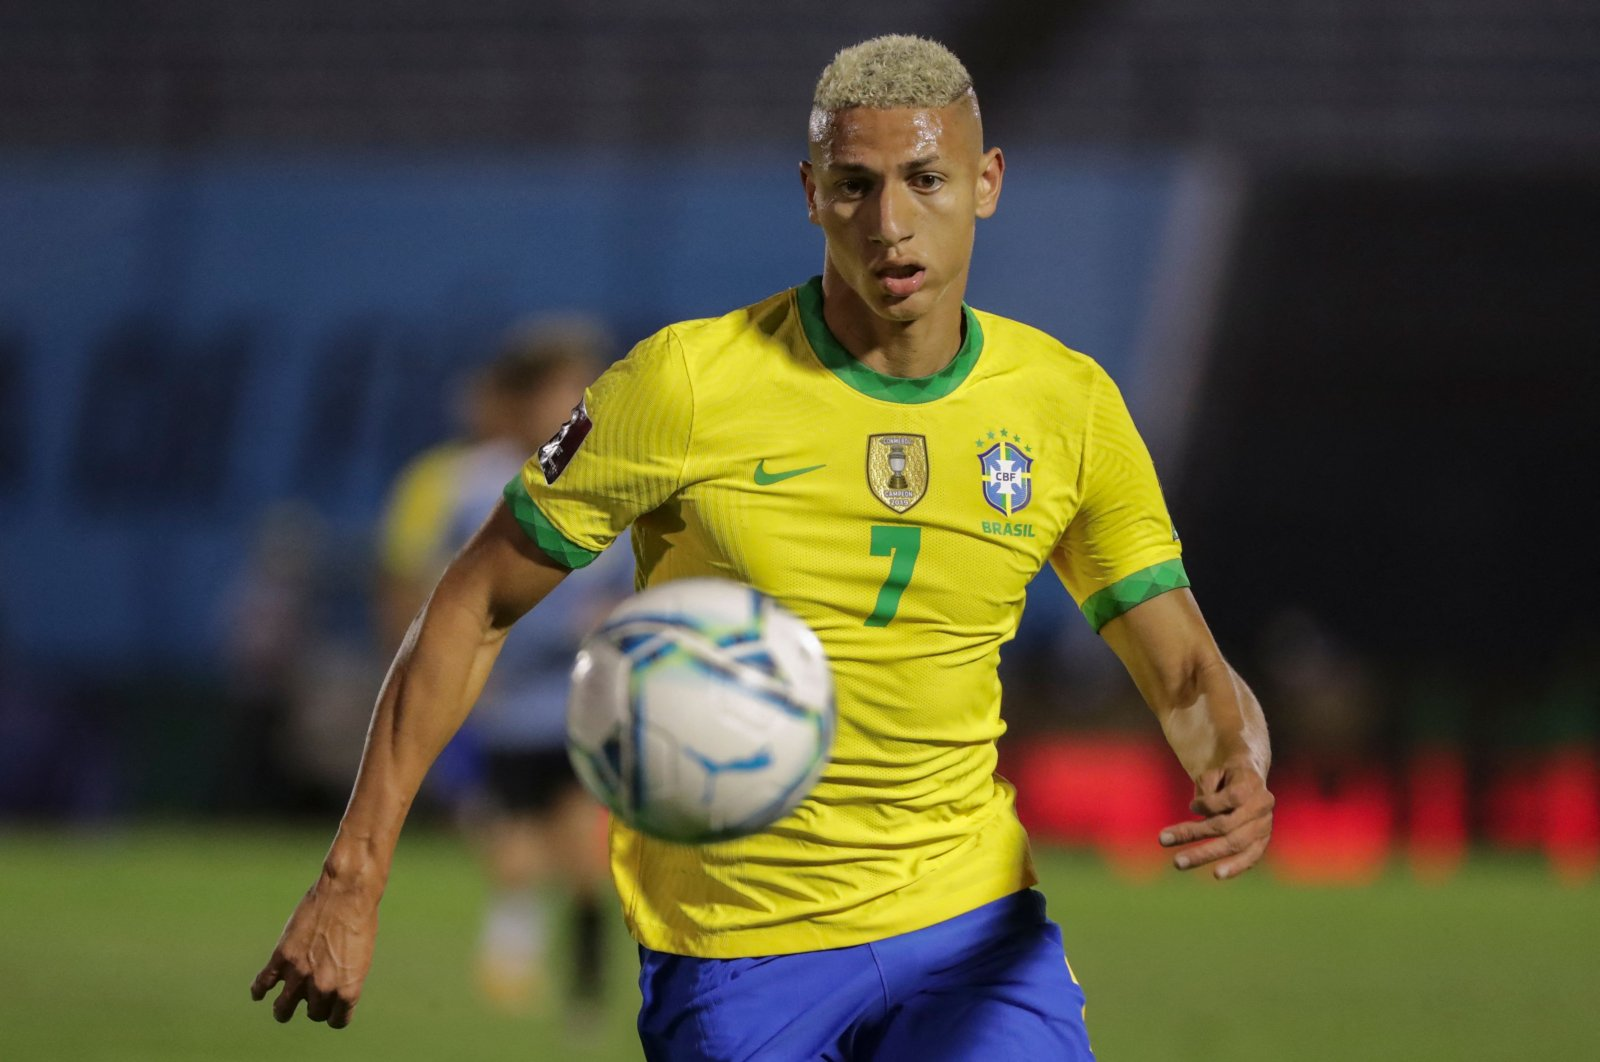 Brazil's Richarlison takes the ball during a closed-door 2022 FIFA World Cup South American qualifier match against Uruguay at the Centenario Stadium in Montevideo, Nov. 17, 2020. (AFP Photos)